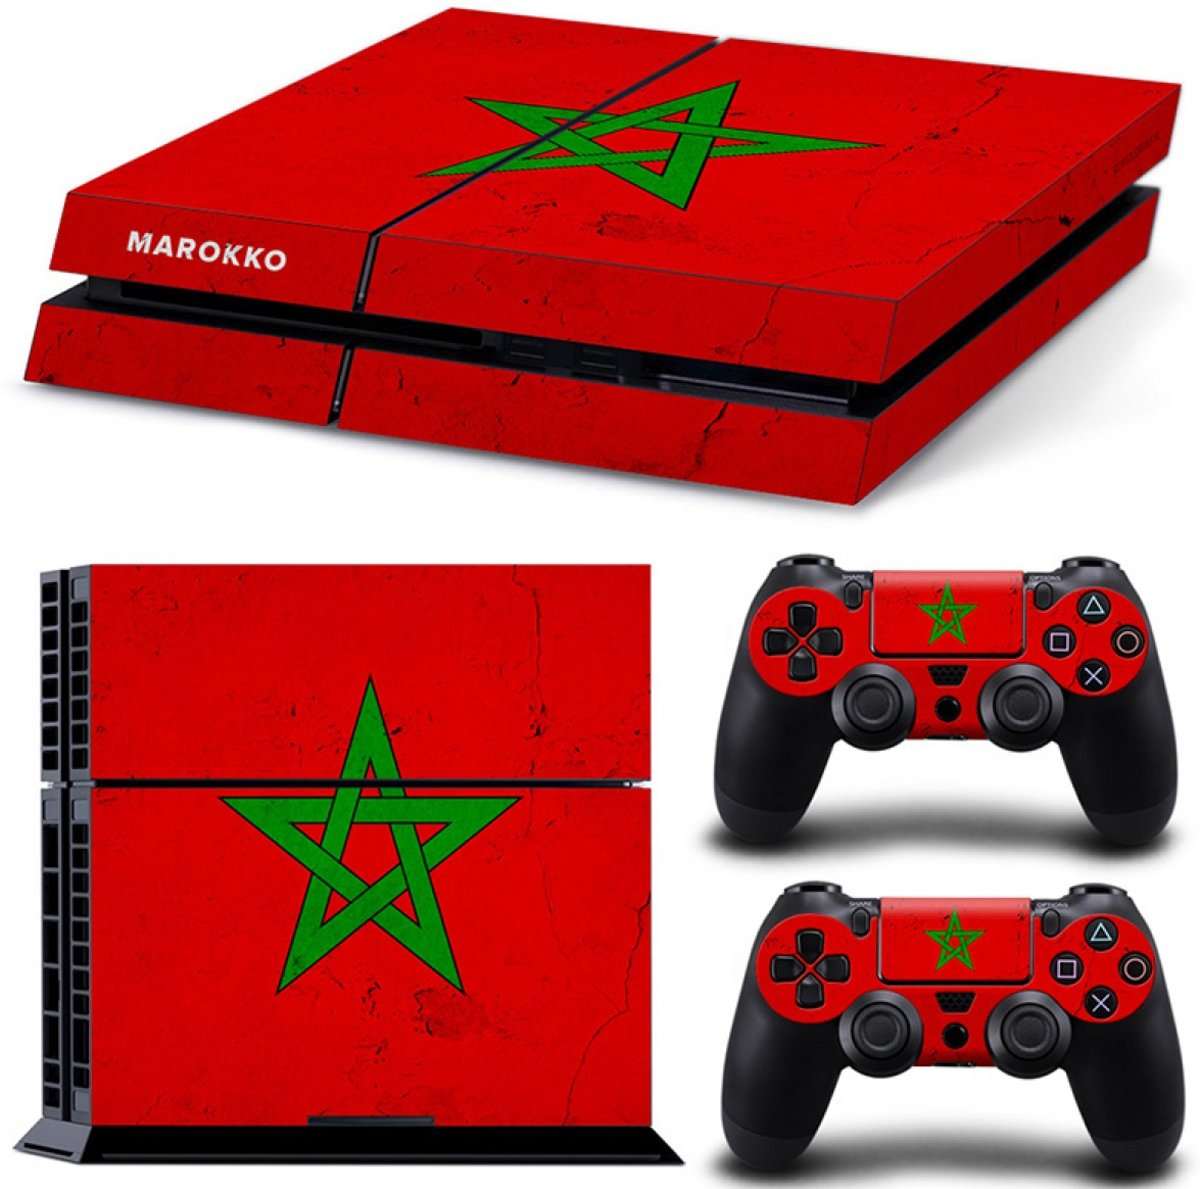 Marokko - PS4 Console Skins PlayStation Stickers